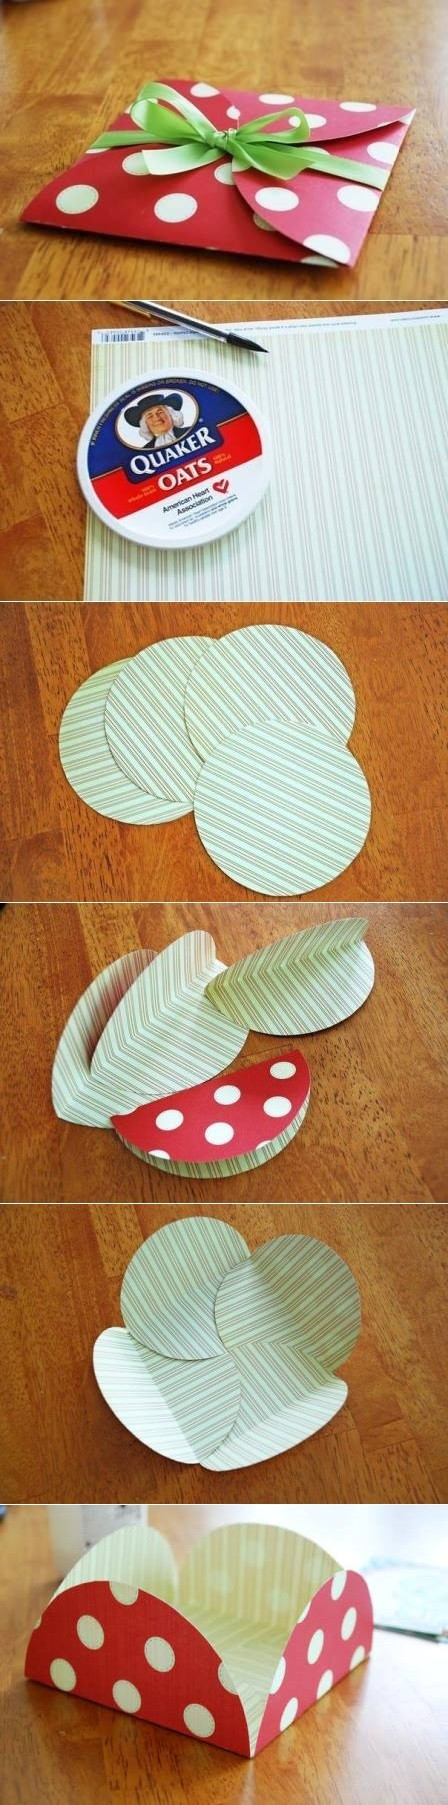 Best ideas about Gift Card Wrapping Ideas . Save or Pin 9 Cute DIY Gift Wrap Ideas All Gifts Considered Now.